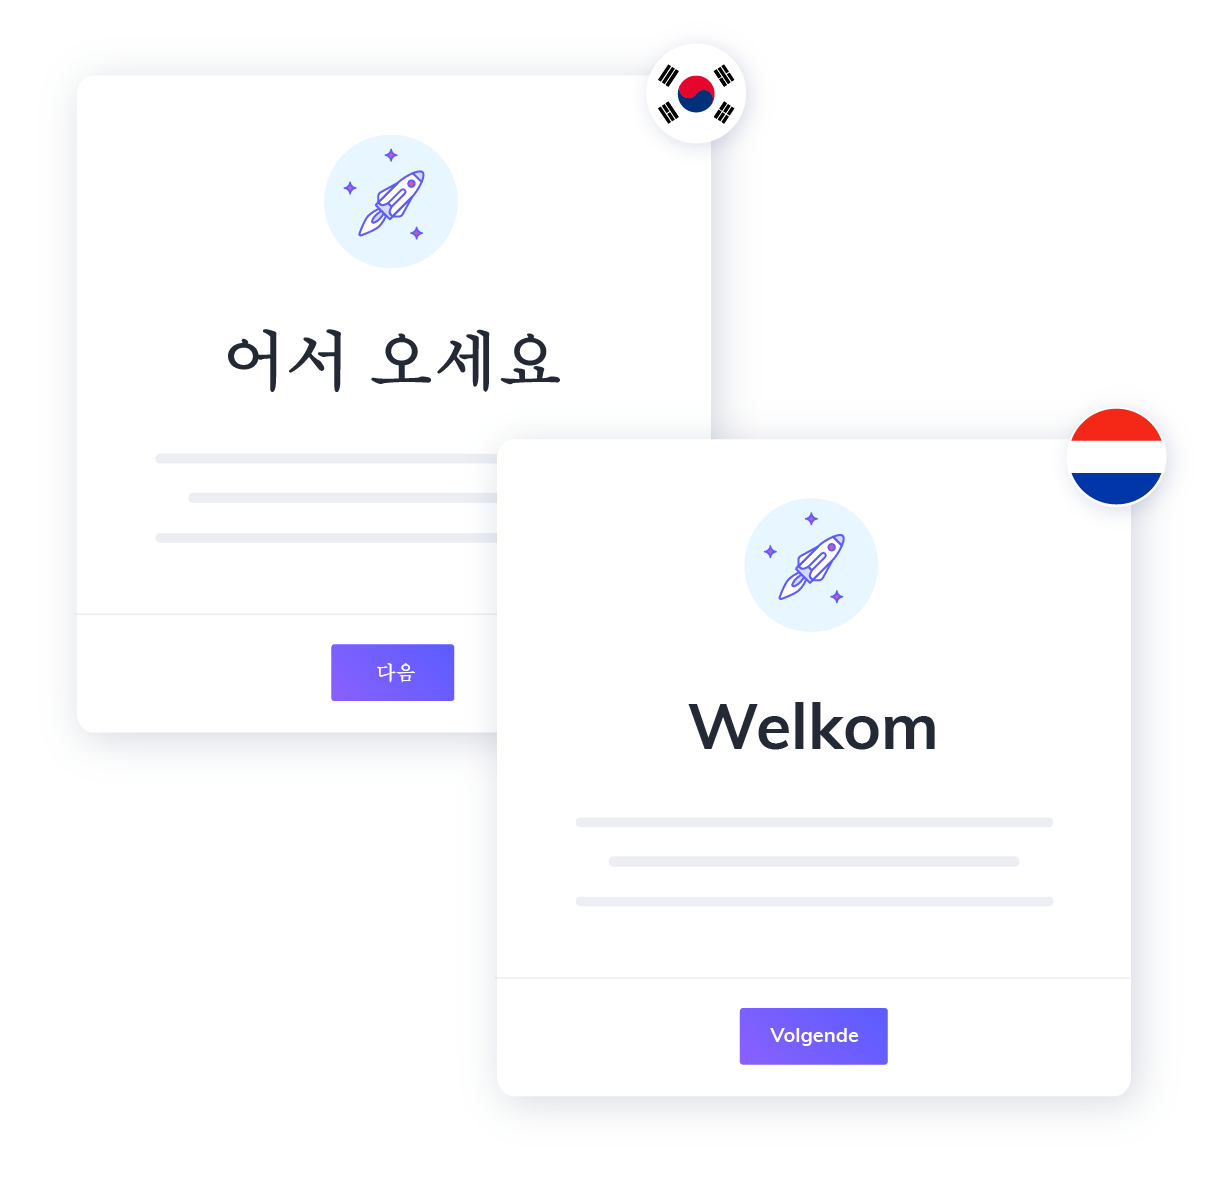 appcues localization how it works. upload translated content and publish